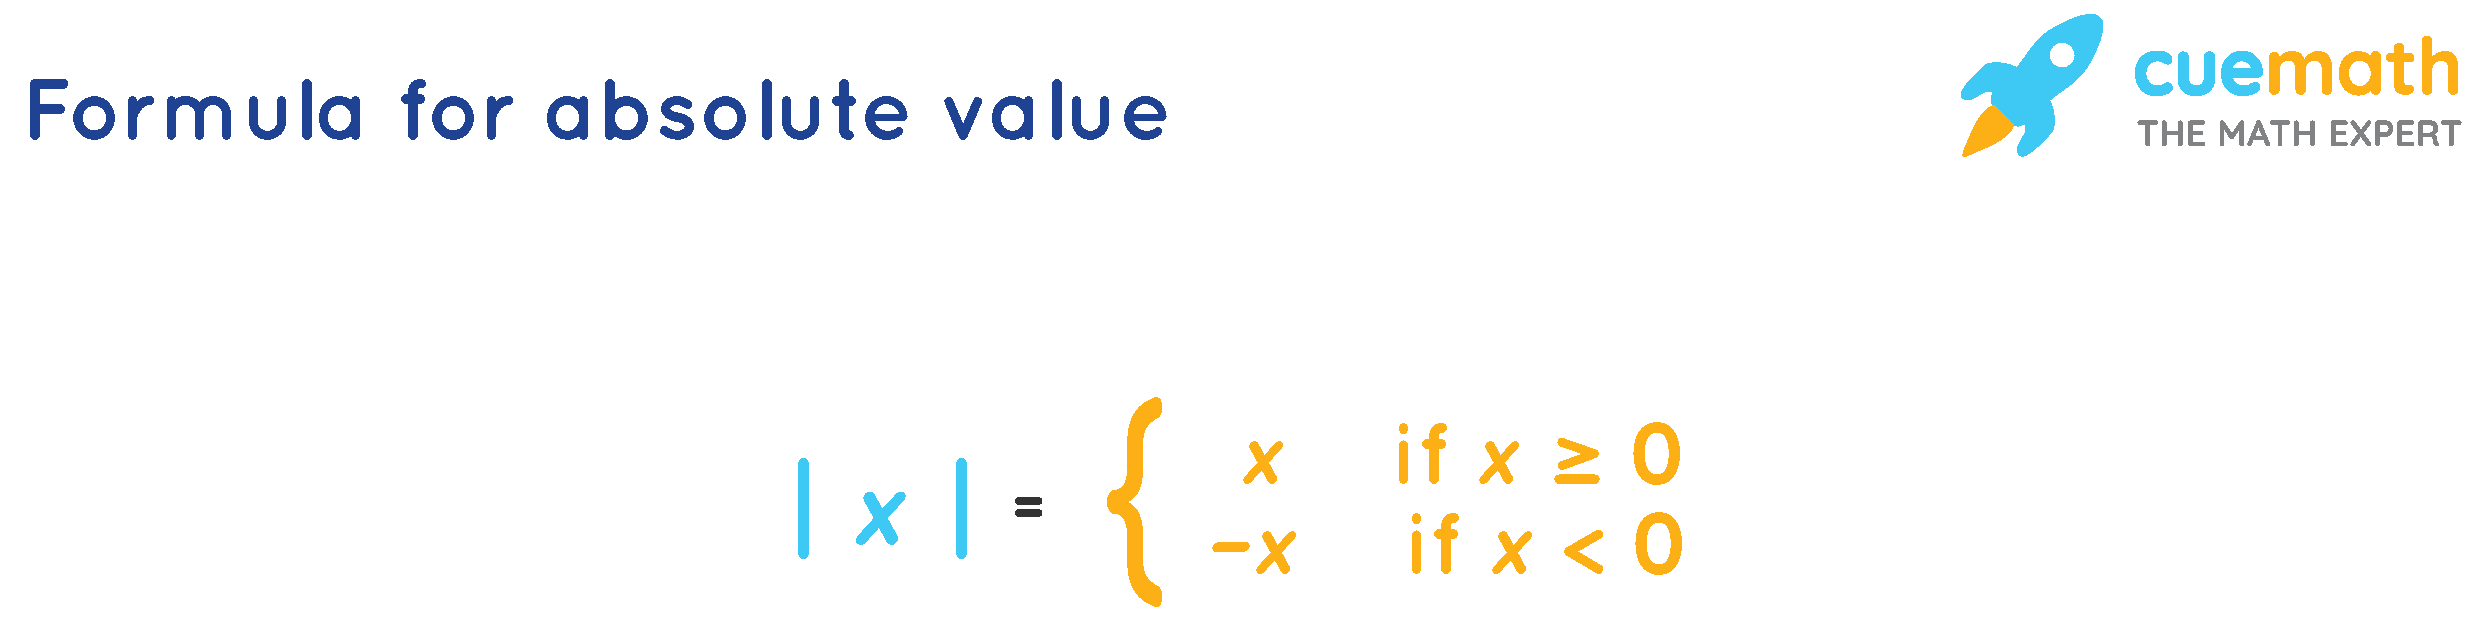 Formula for absolute value